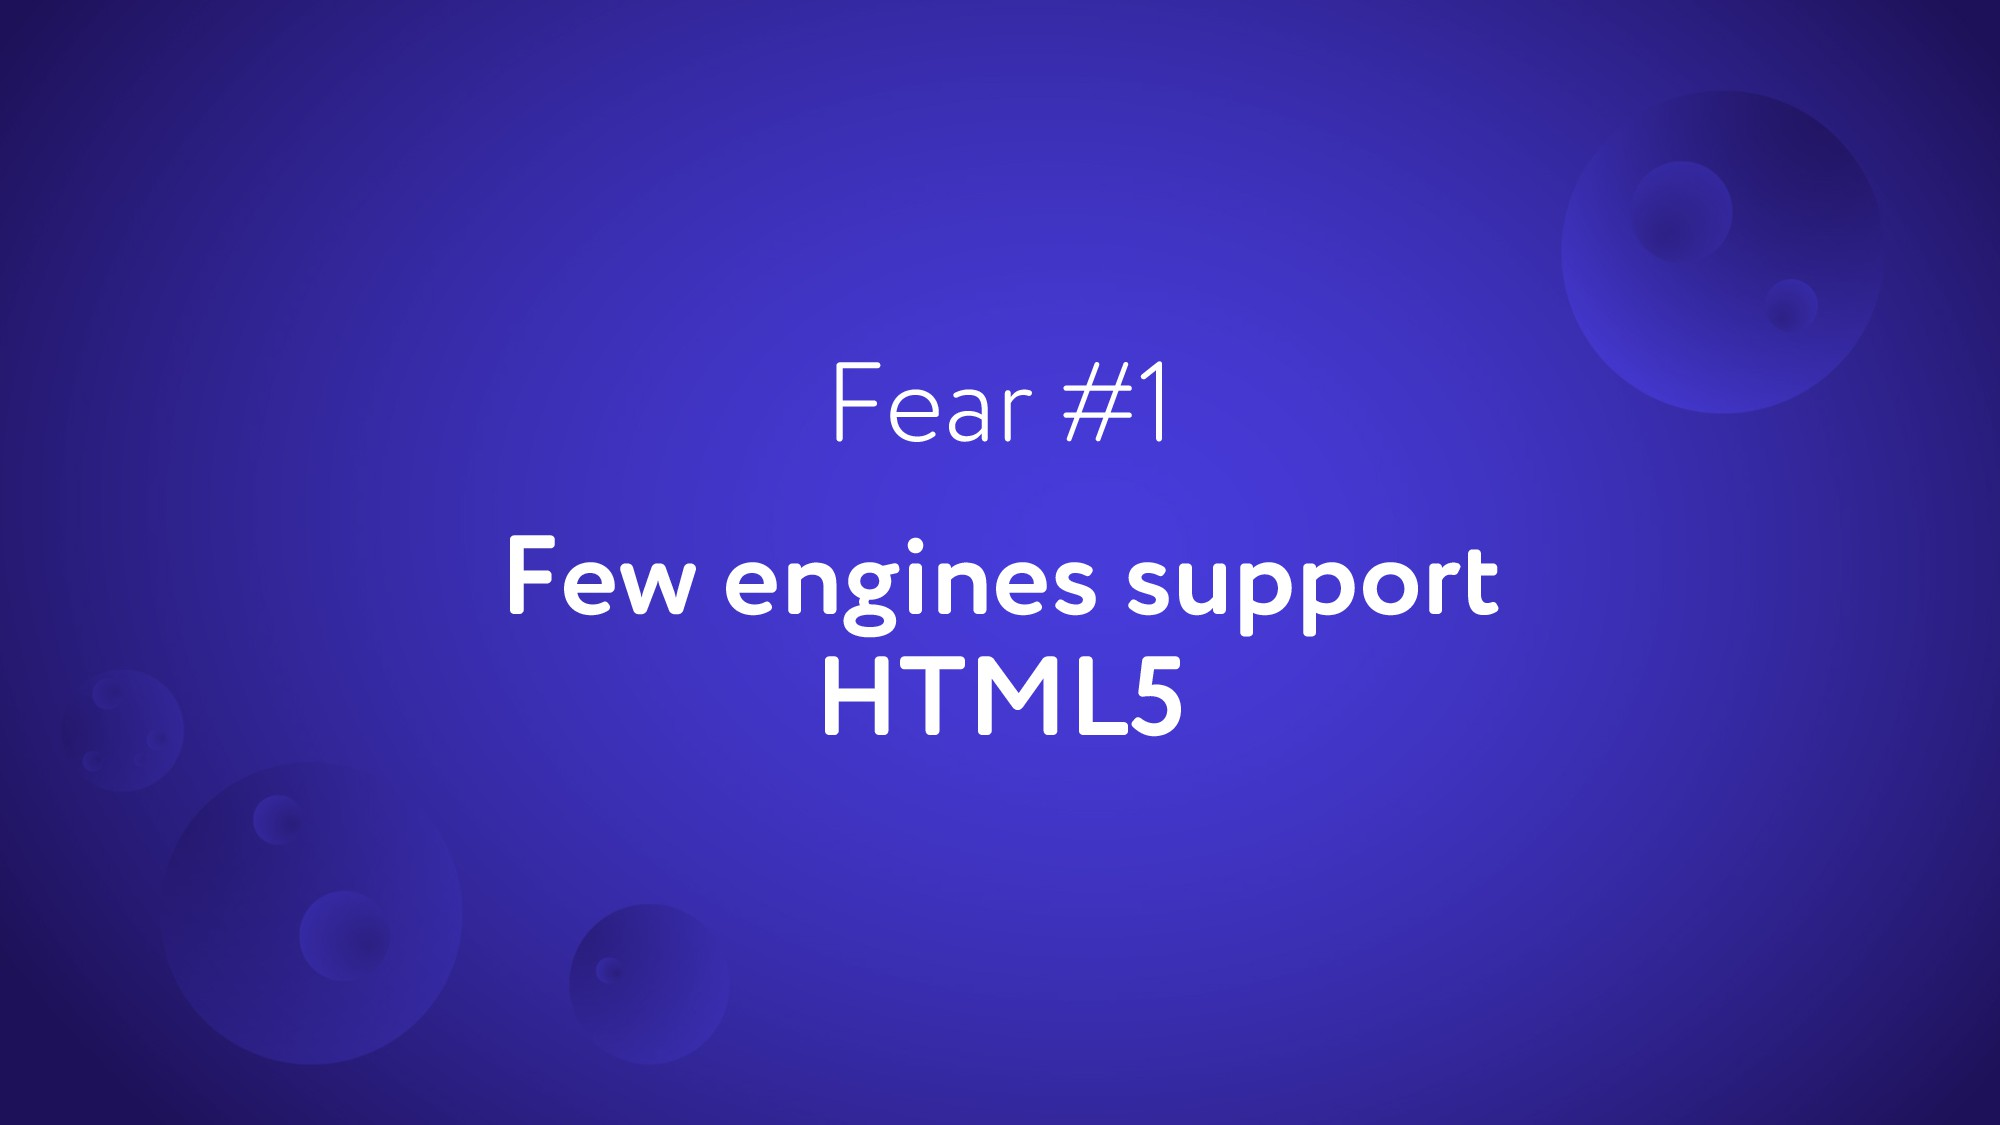 Few engines support HTML5 Fear #1